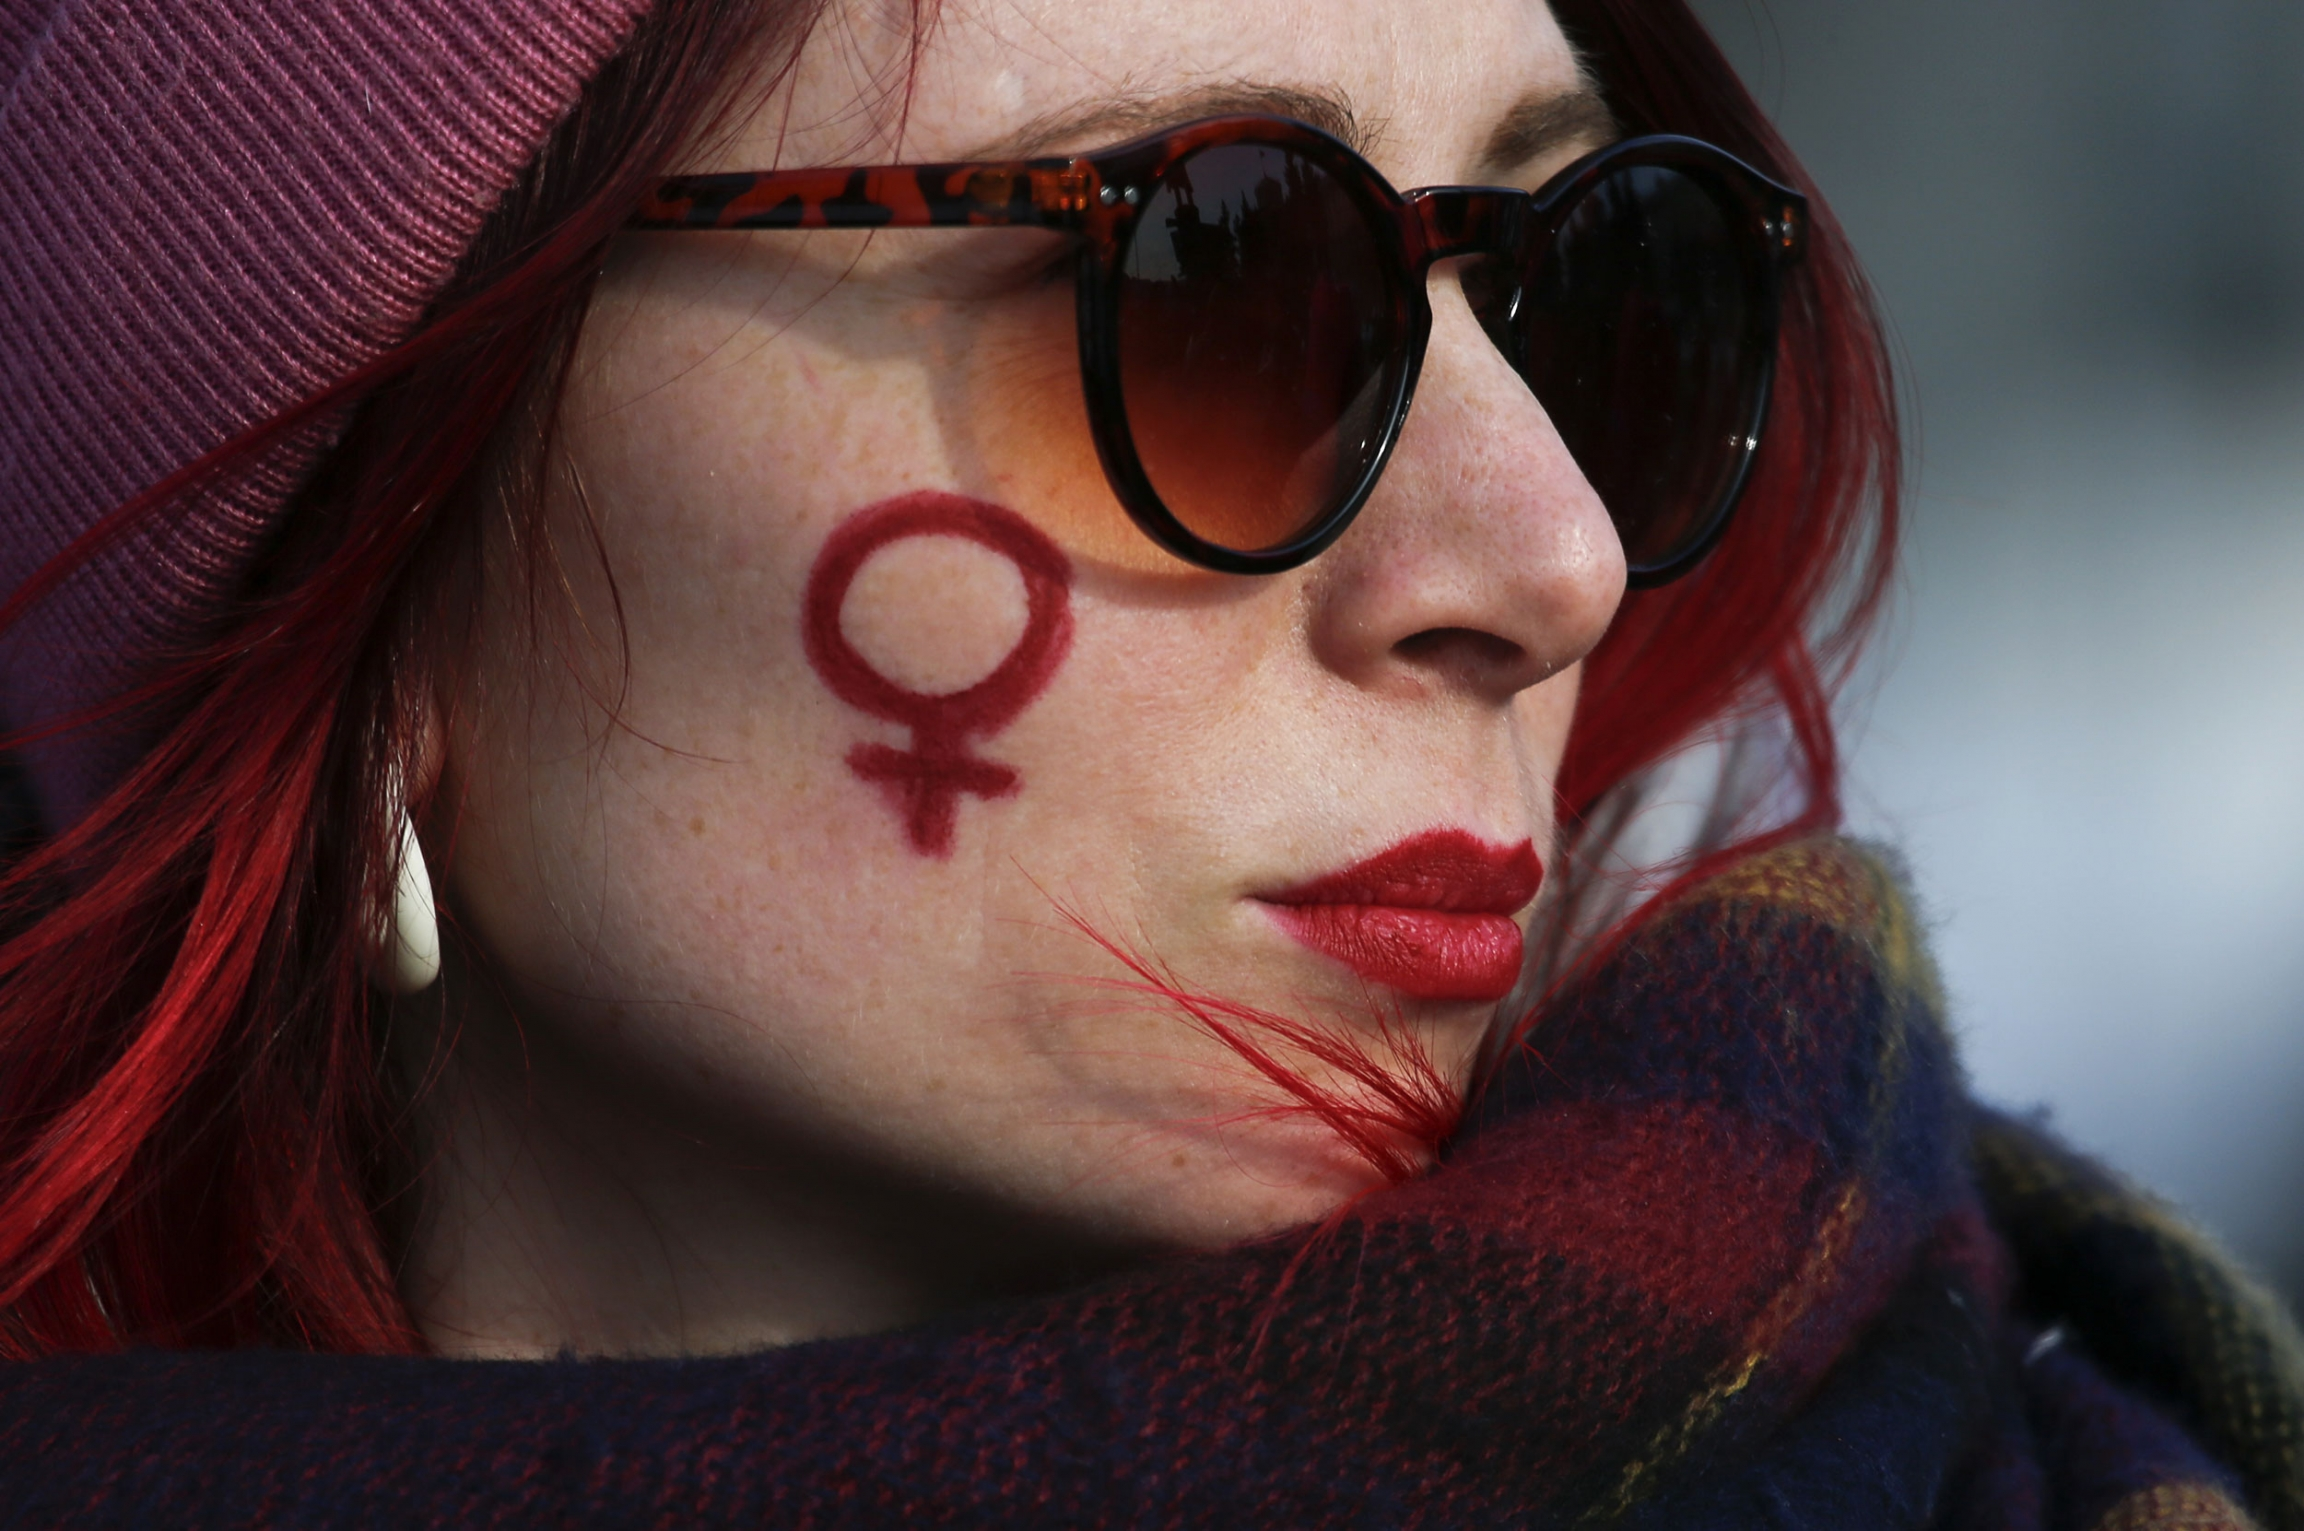 A woman has drawn the symbol for women on her cheek